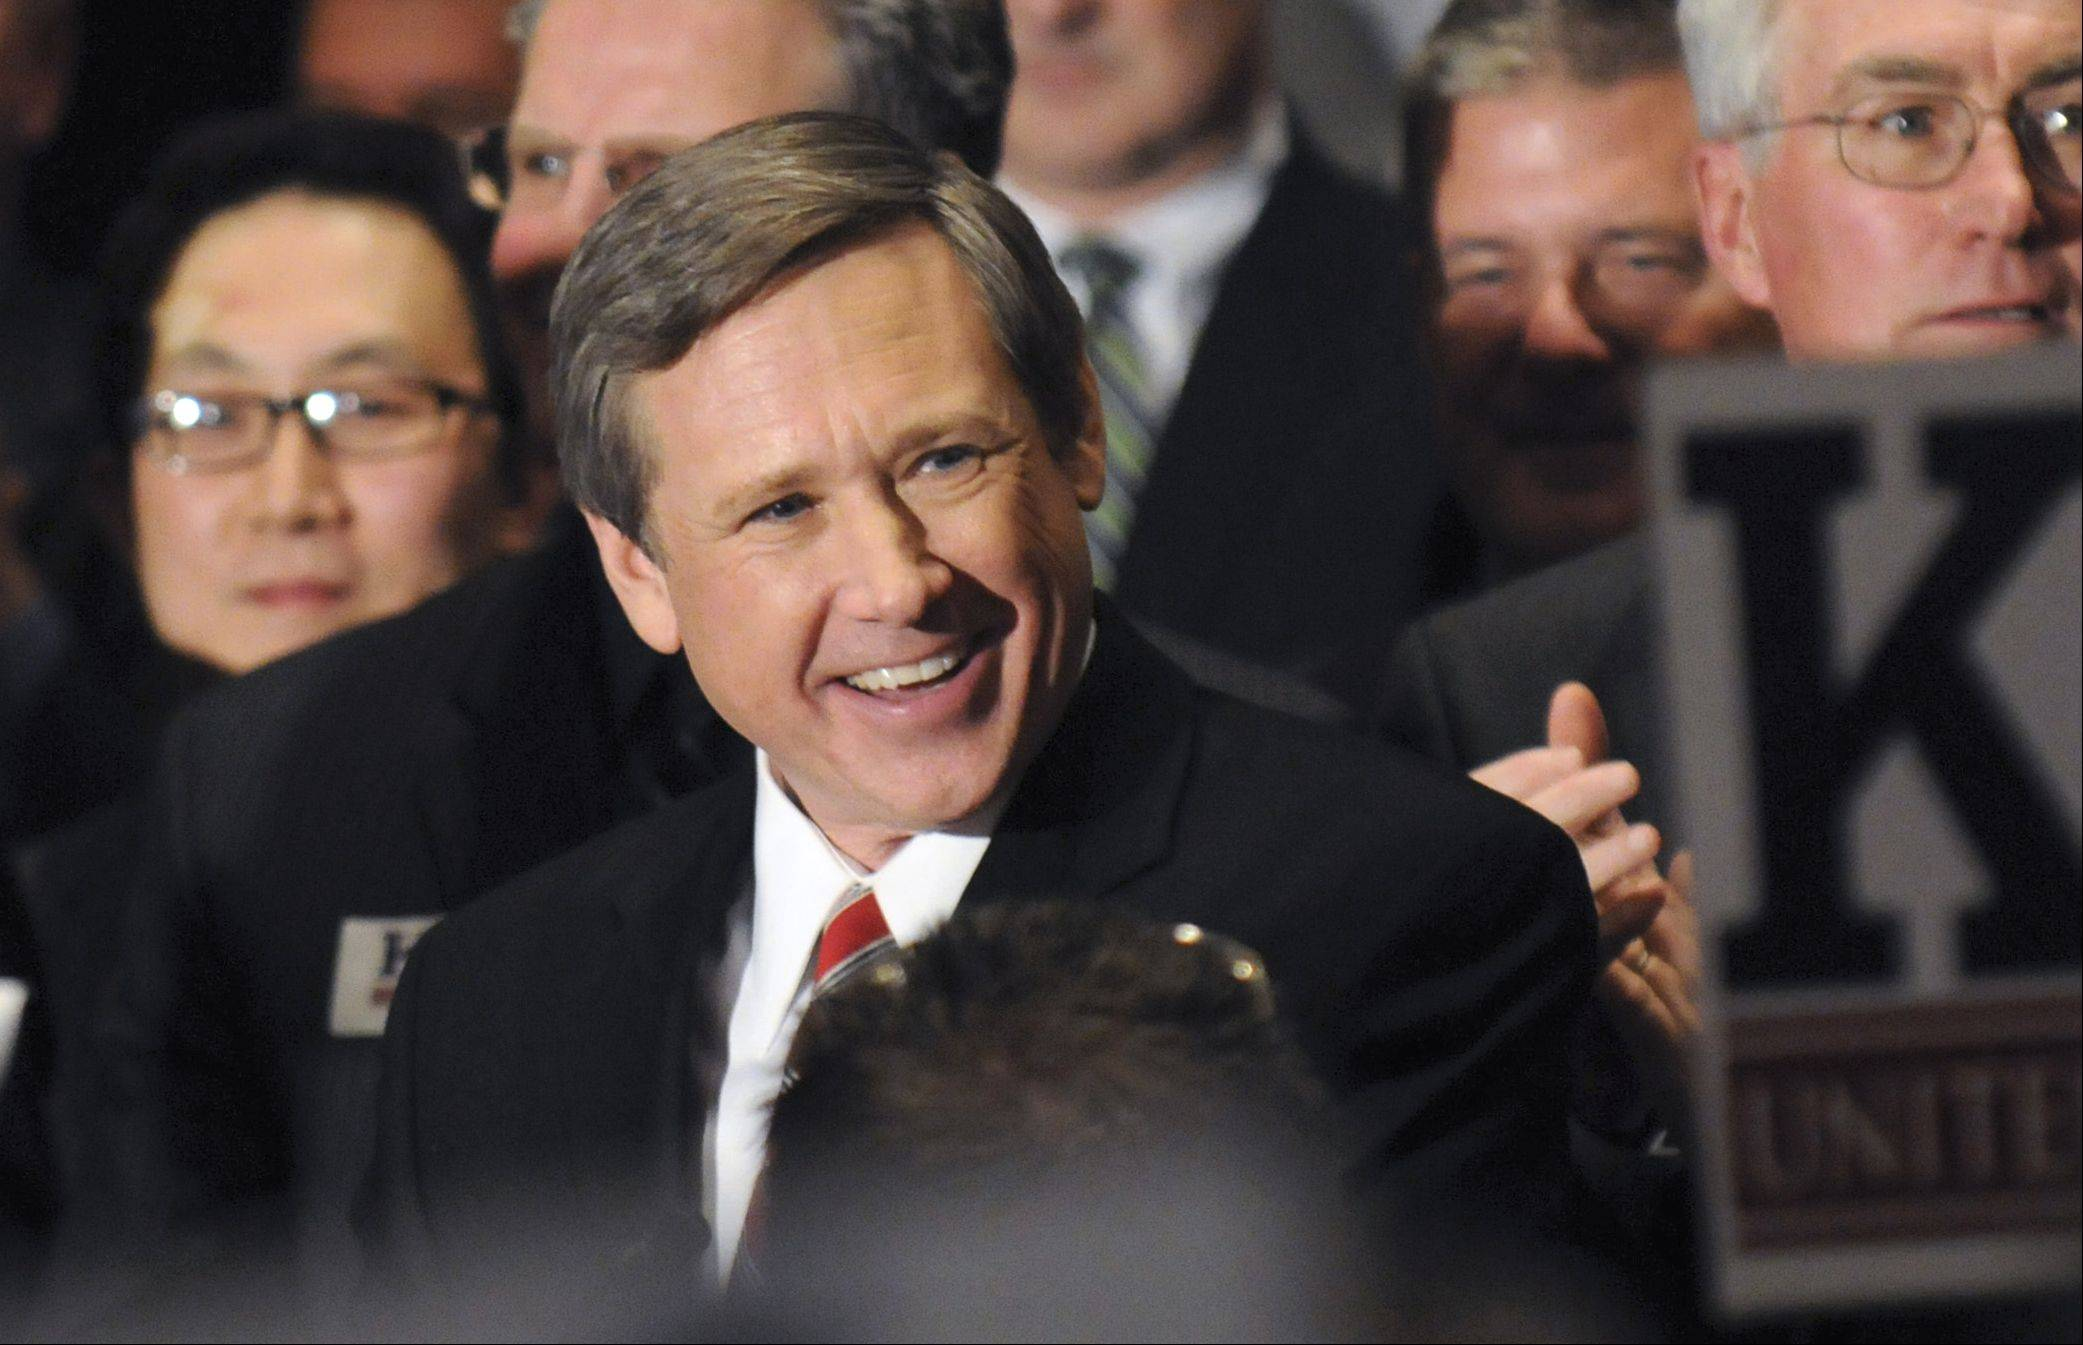 Mark Kirk in 2010 when he was a congressman.